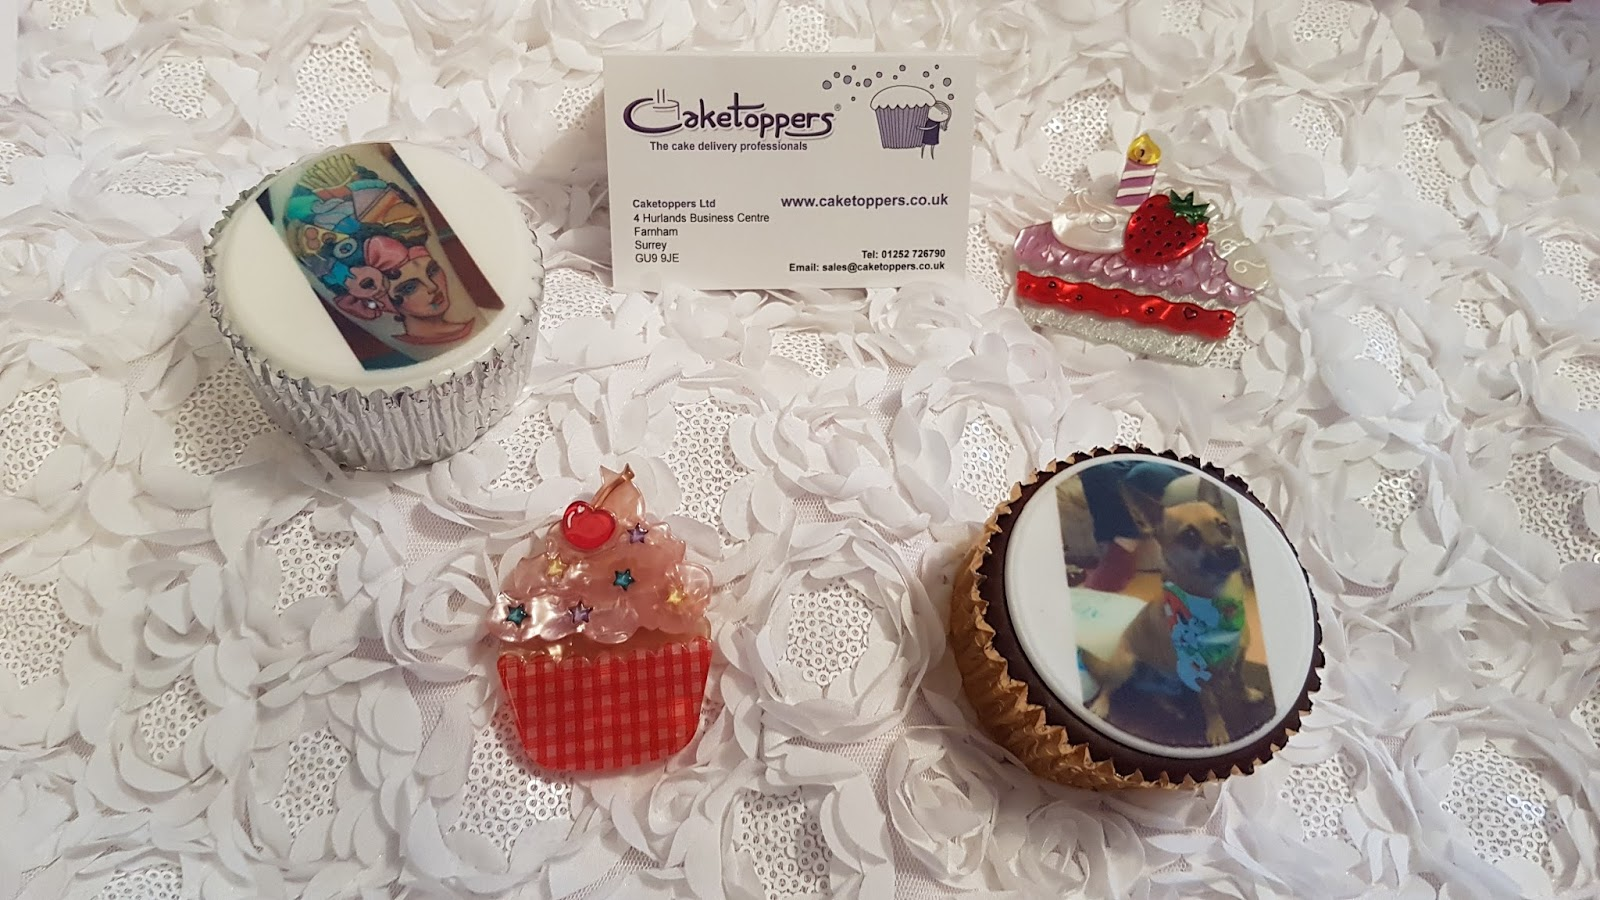 Cake Toppers Uk Next Day Delivery : Caketoppers Photo Cupcakes - Does My Blog Make Me Look Fat?